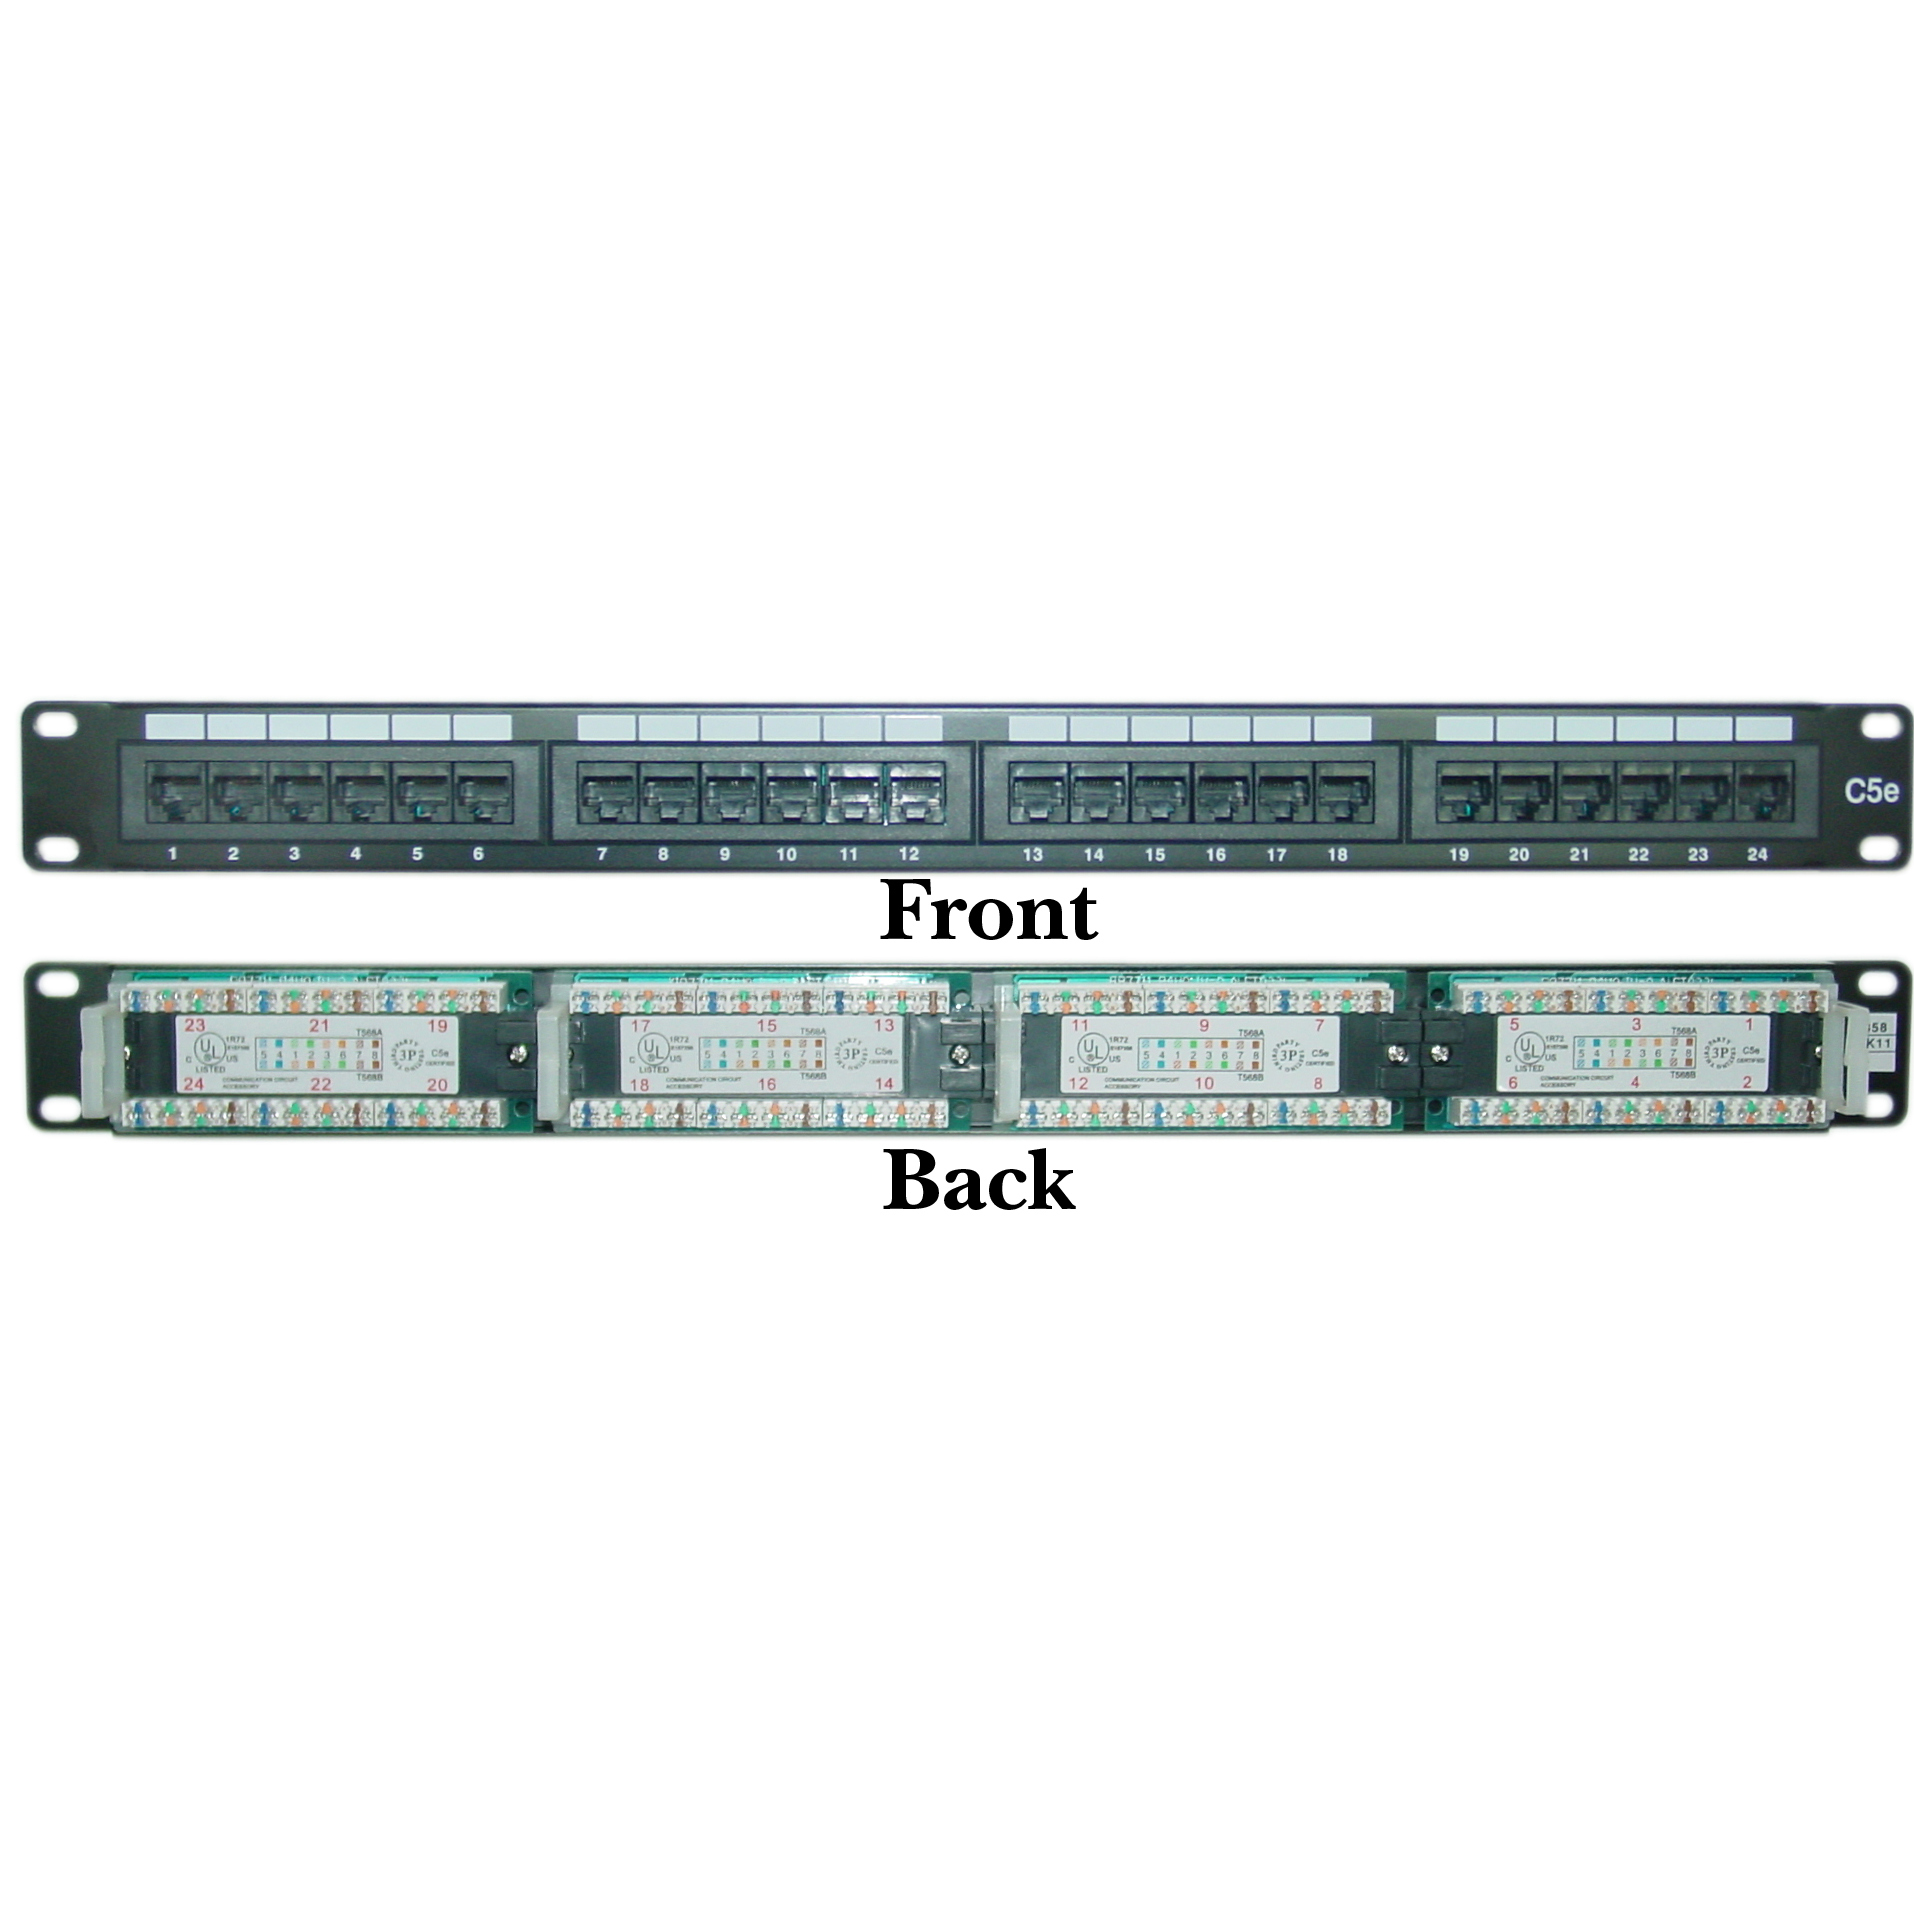 68pp 03024 1u rackmount 24 port cat5e patch panel, horizontal